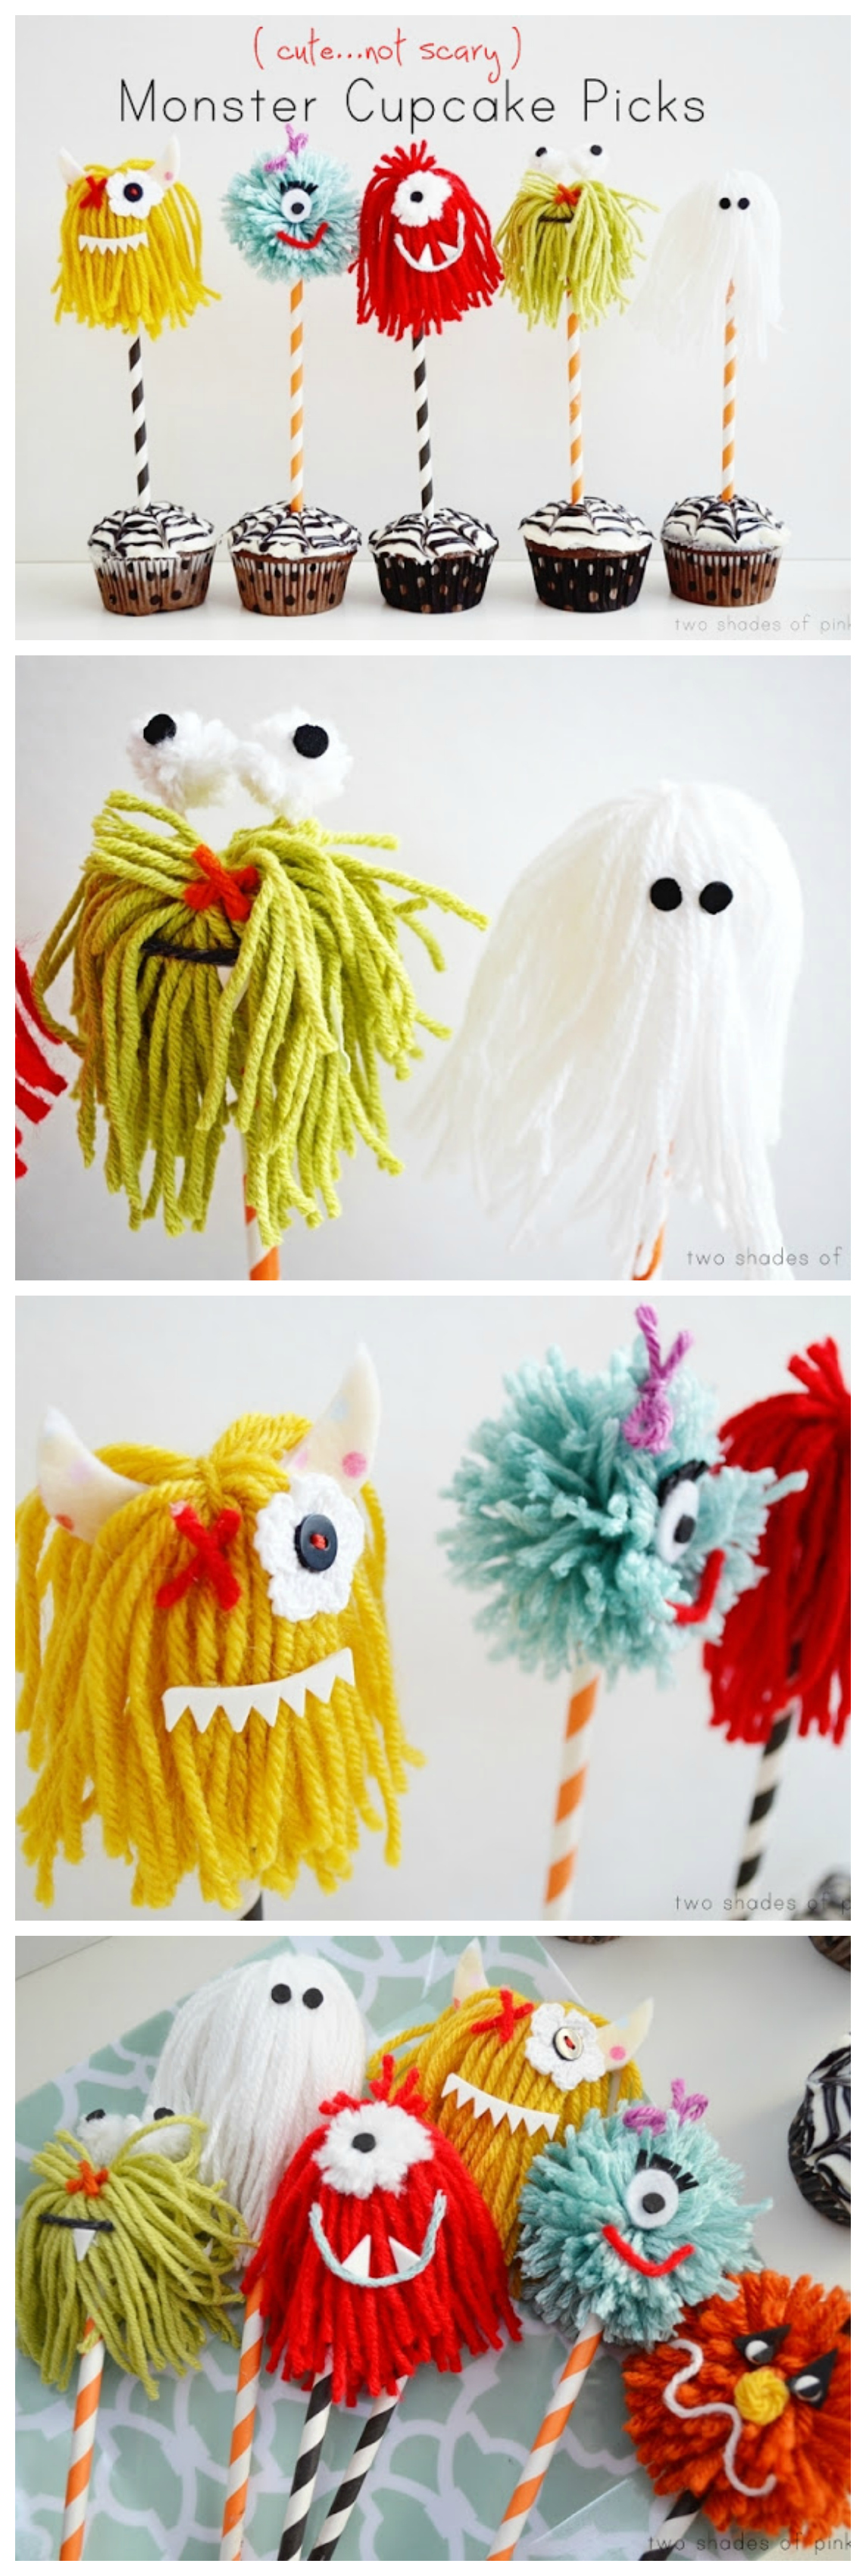 Monster Cupcake Picks | Cutest Halloween Crafts!